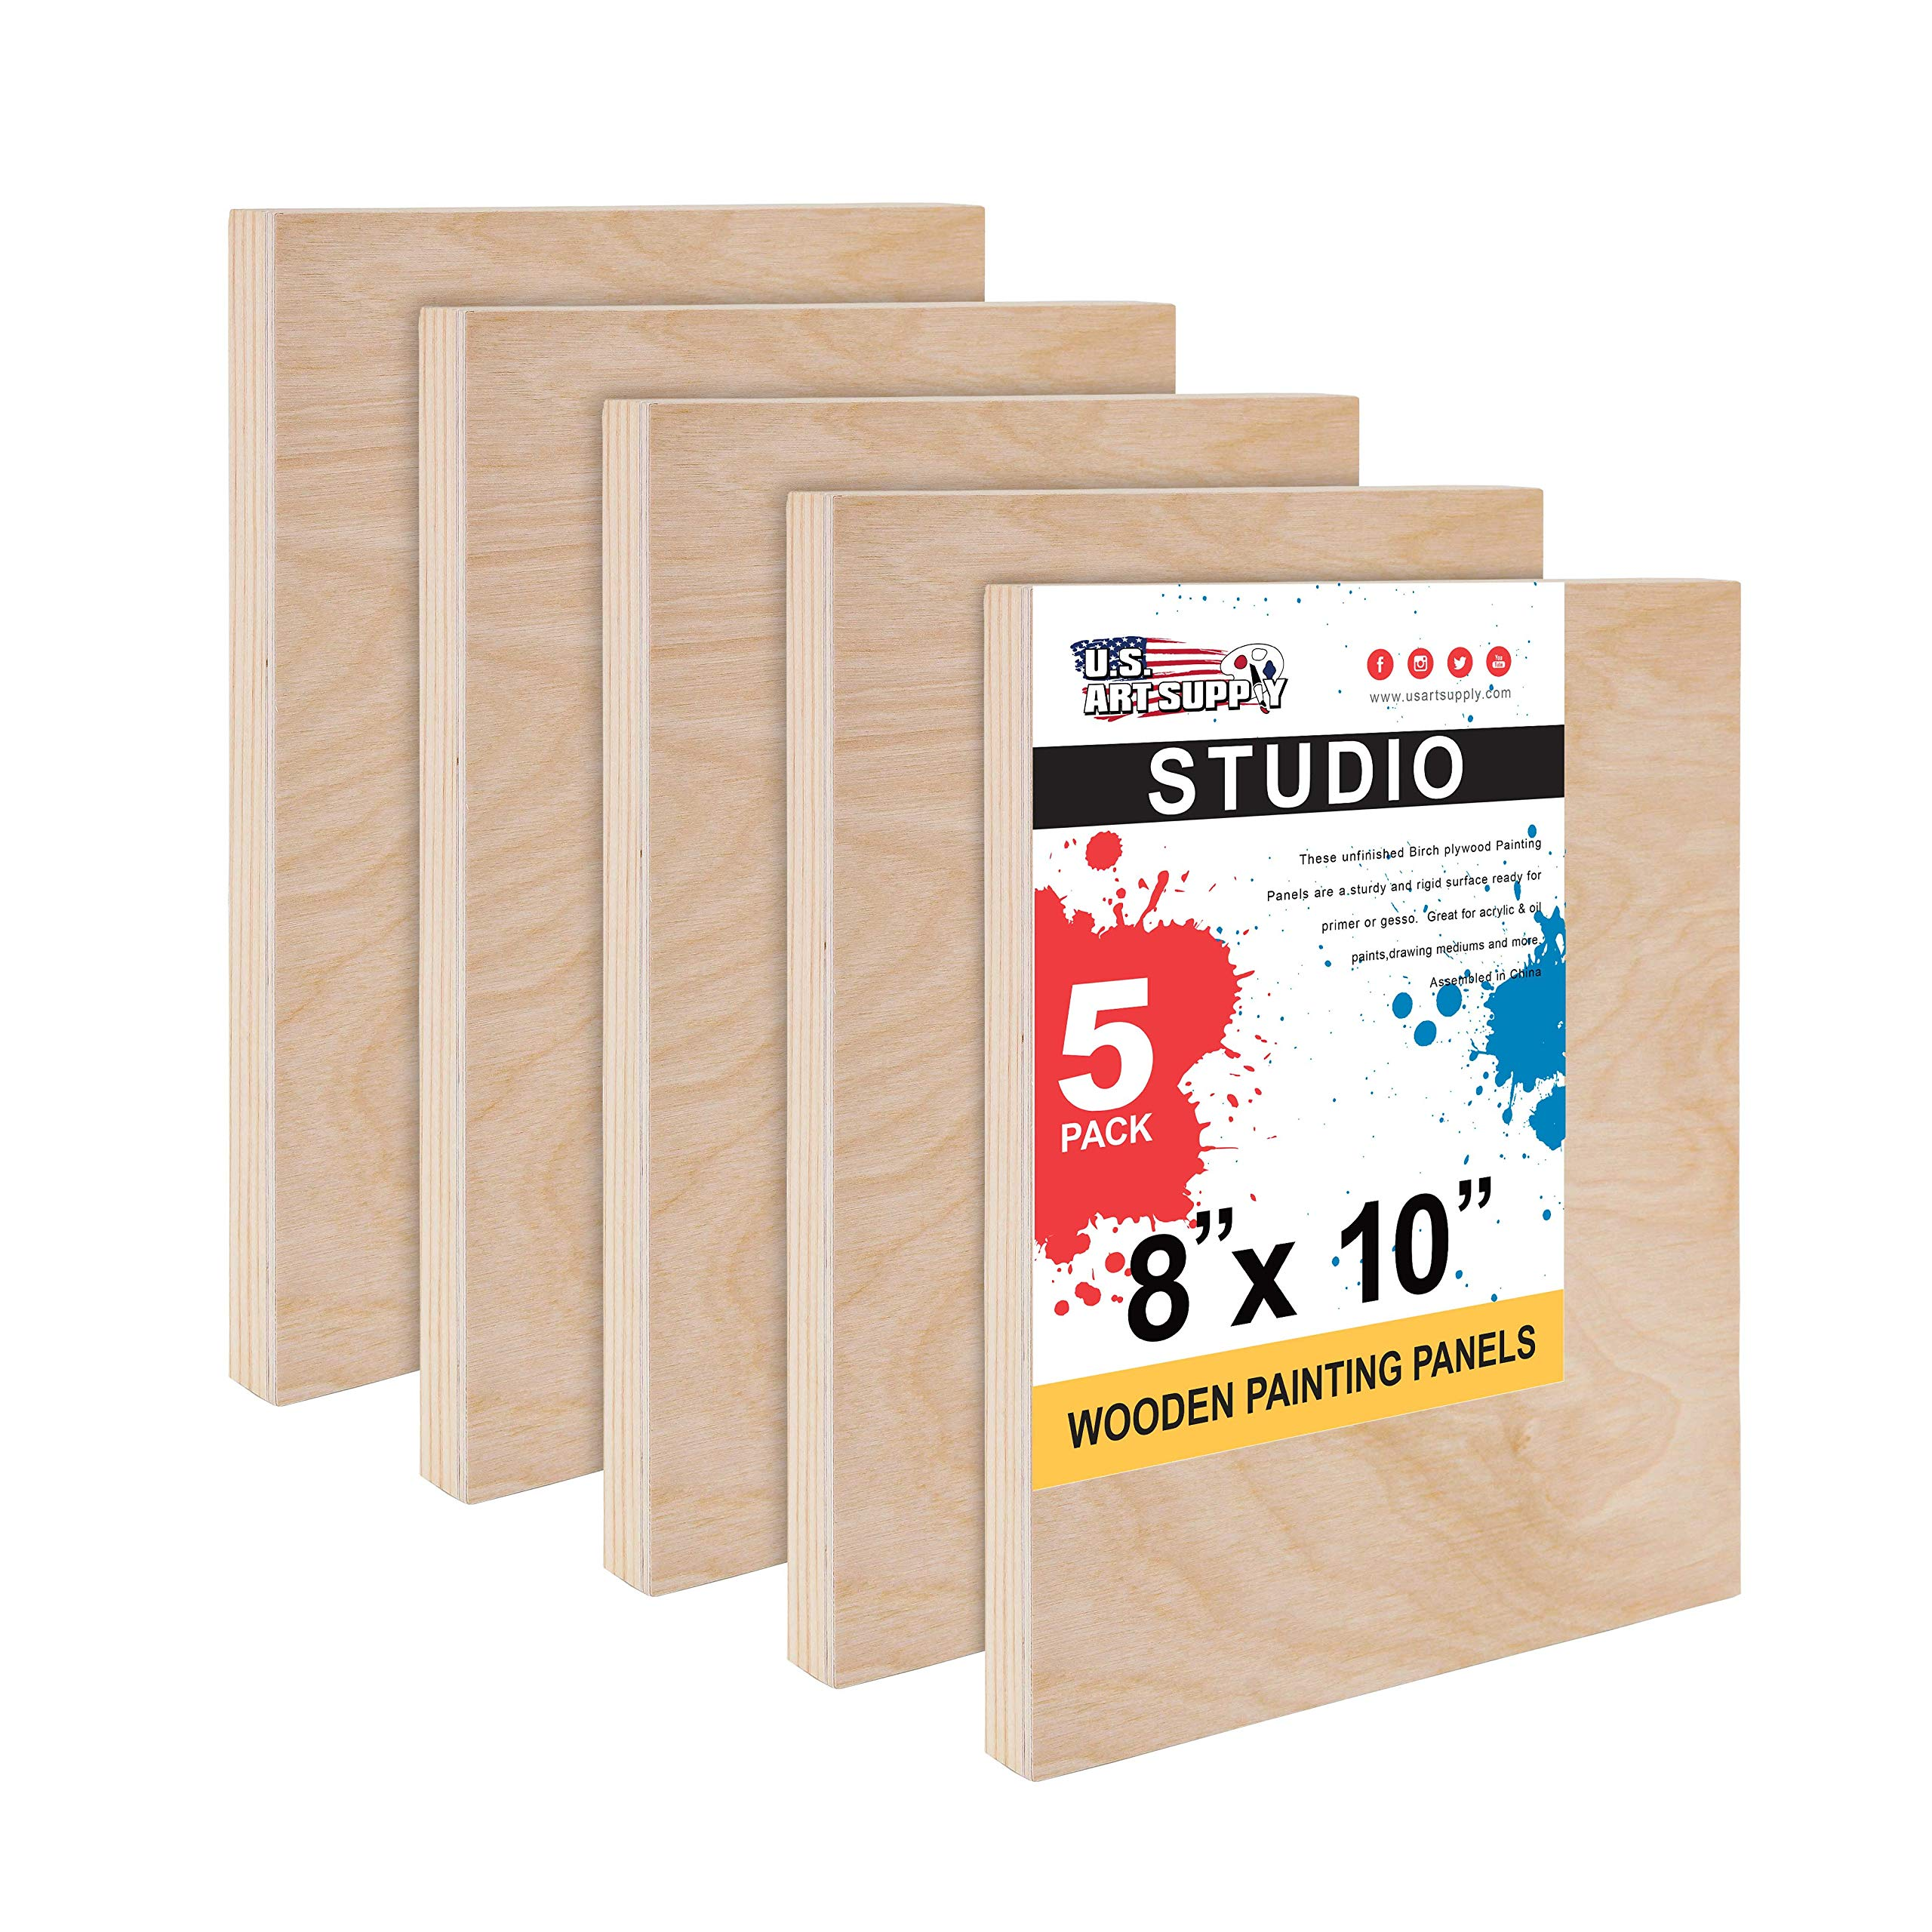 U.S. Art Supply 8'' x 10'' Birch Wood Paint Pouring Panel Boards, Studio 3/4'' Deep Cradle (Pack of 5) - Artist Wooden Wall Canvases - Painting Mixed-Media Craft, Acrylic, Oil, Watercolor, Encaustic by U.S. Art Supply